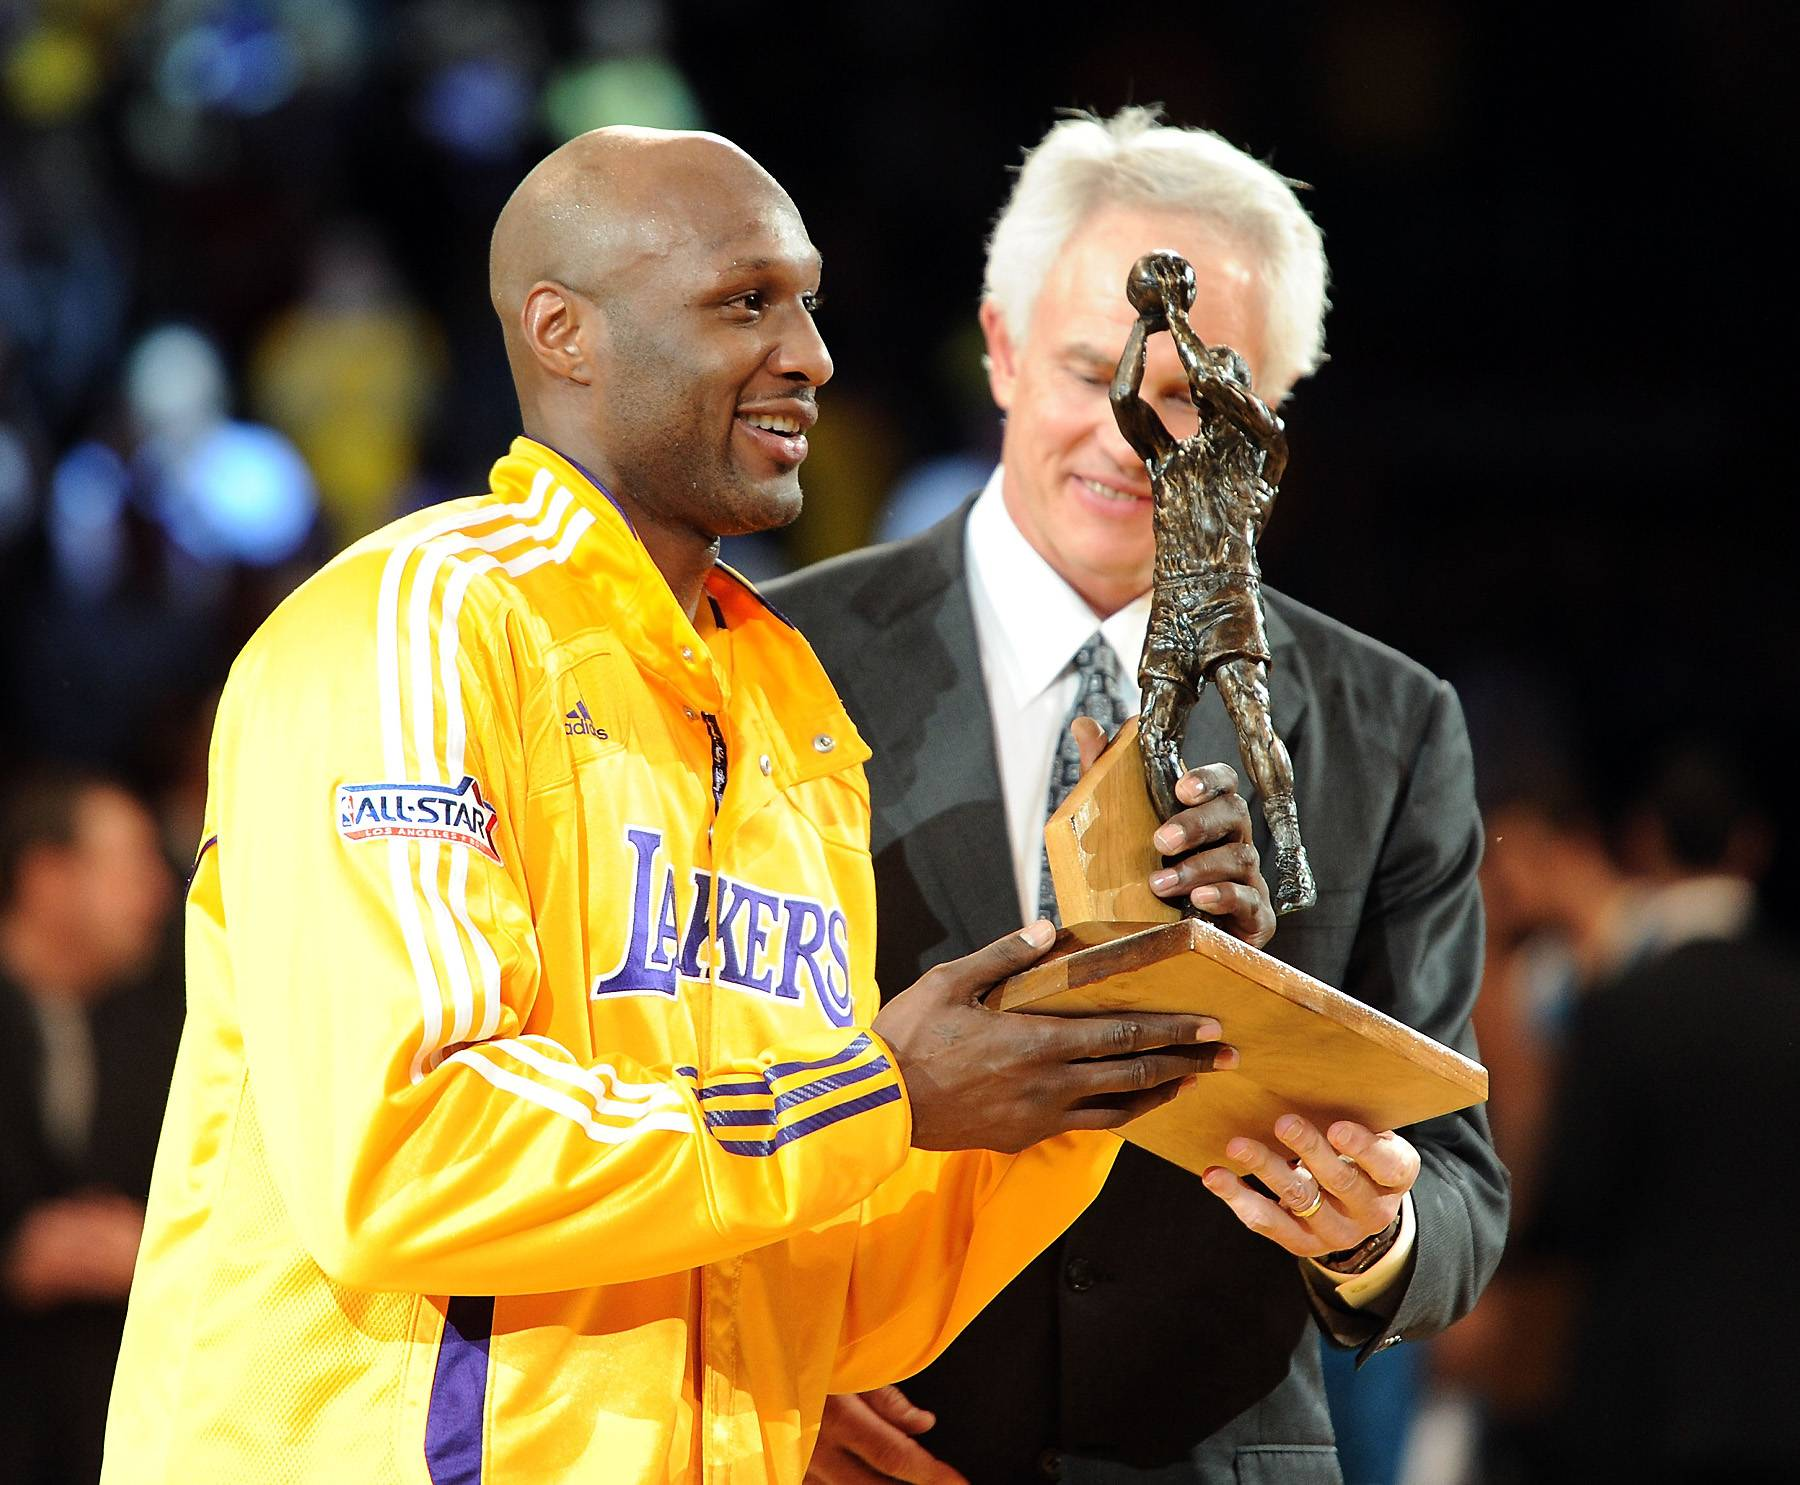 Sixth Man of the Year Award and Personal Issues - Odom continued to rack up career highs with the Lakers in the 2010-2011 seasons. Averaging 14.4 points, 8.7 rebounds, 3.0 assists, Odom became the first Laker to win the Sixth Man of The Year Award. Following that season, the star reportedly contemplated quitting the NBA when his cousin was killed, and he himself was involved in a car accident which killed a cyclist.(Photo: Harry How/Getty Images)